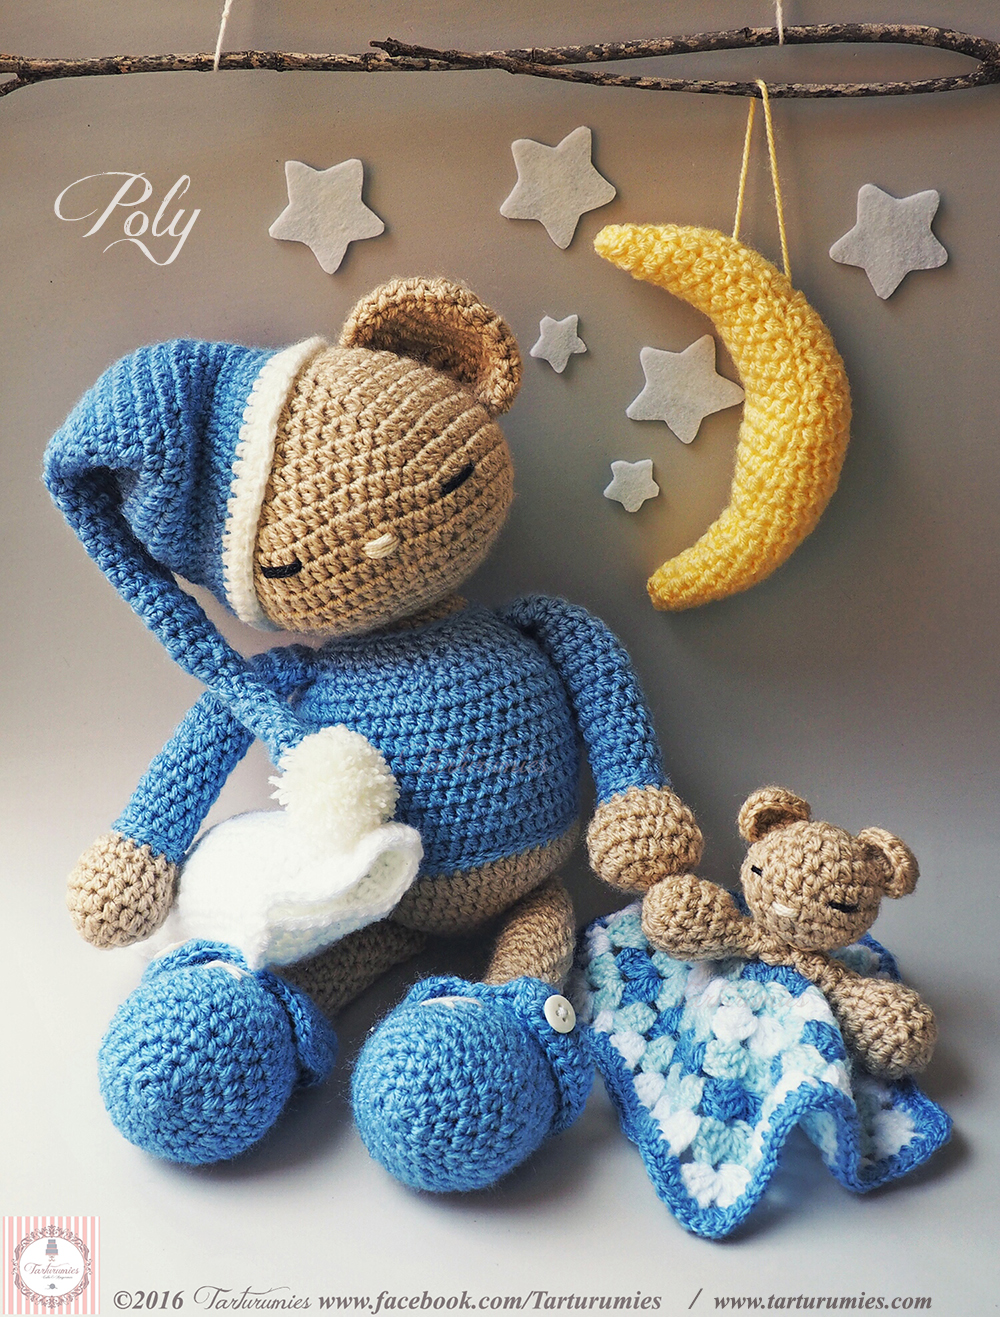 sleepy bear amigurumi by TheArtisansNook on DeviantArt | 1317x1000